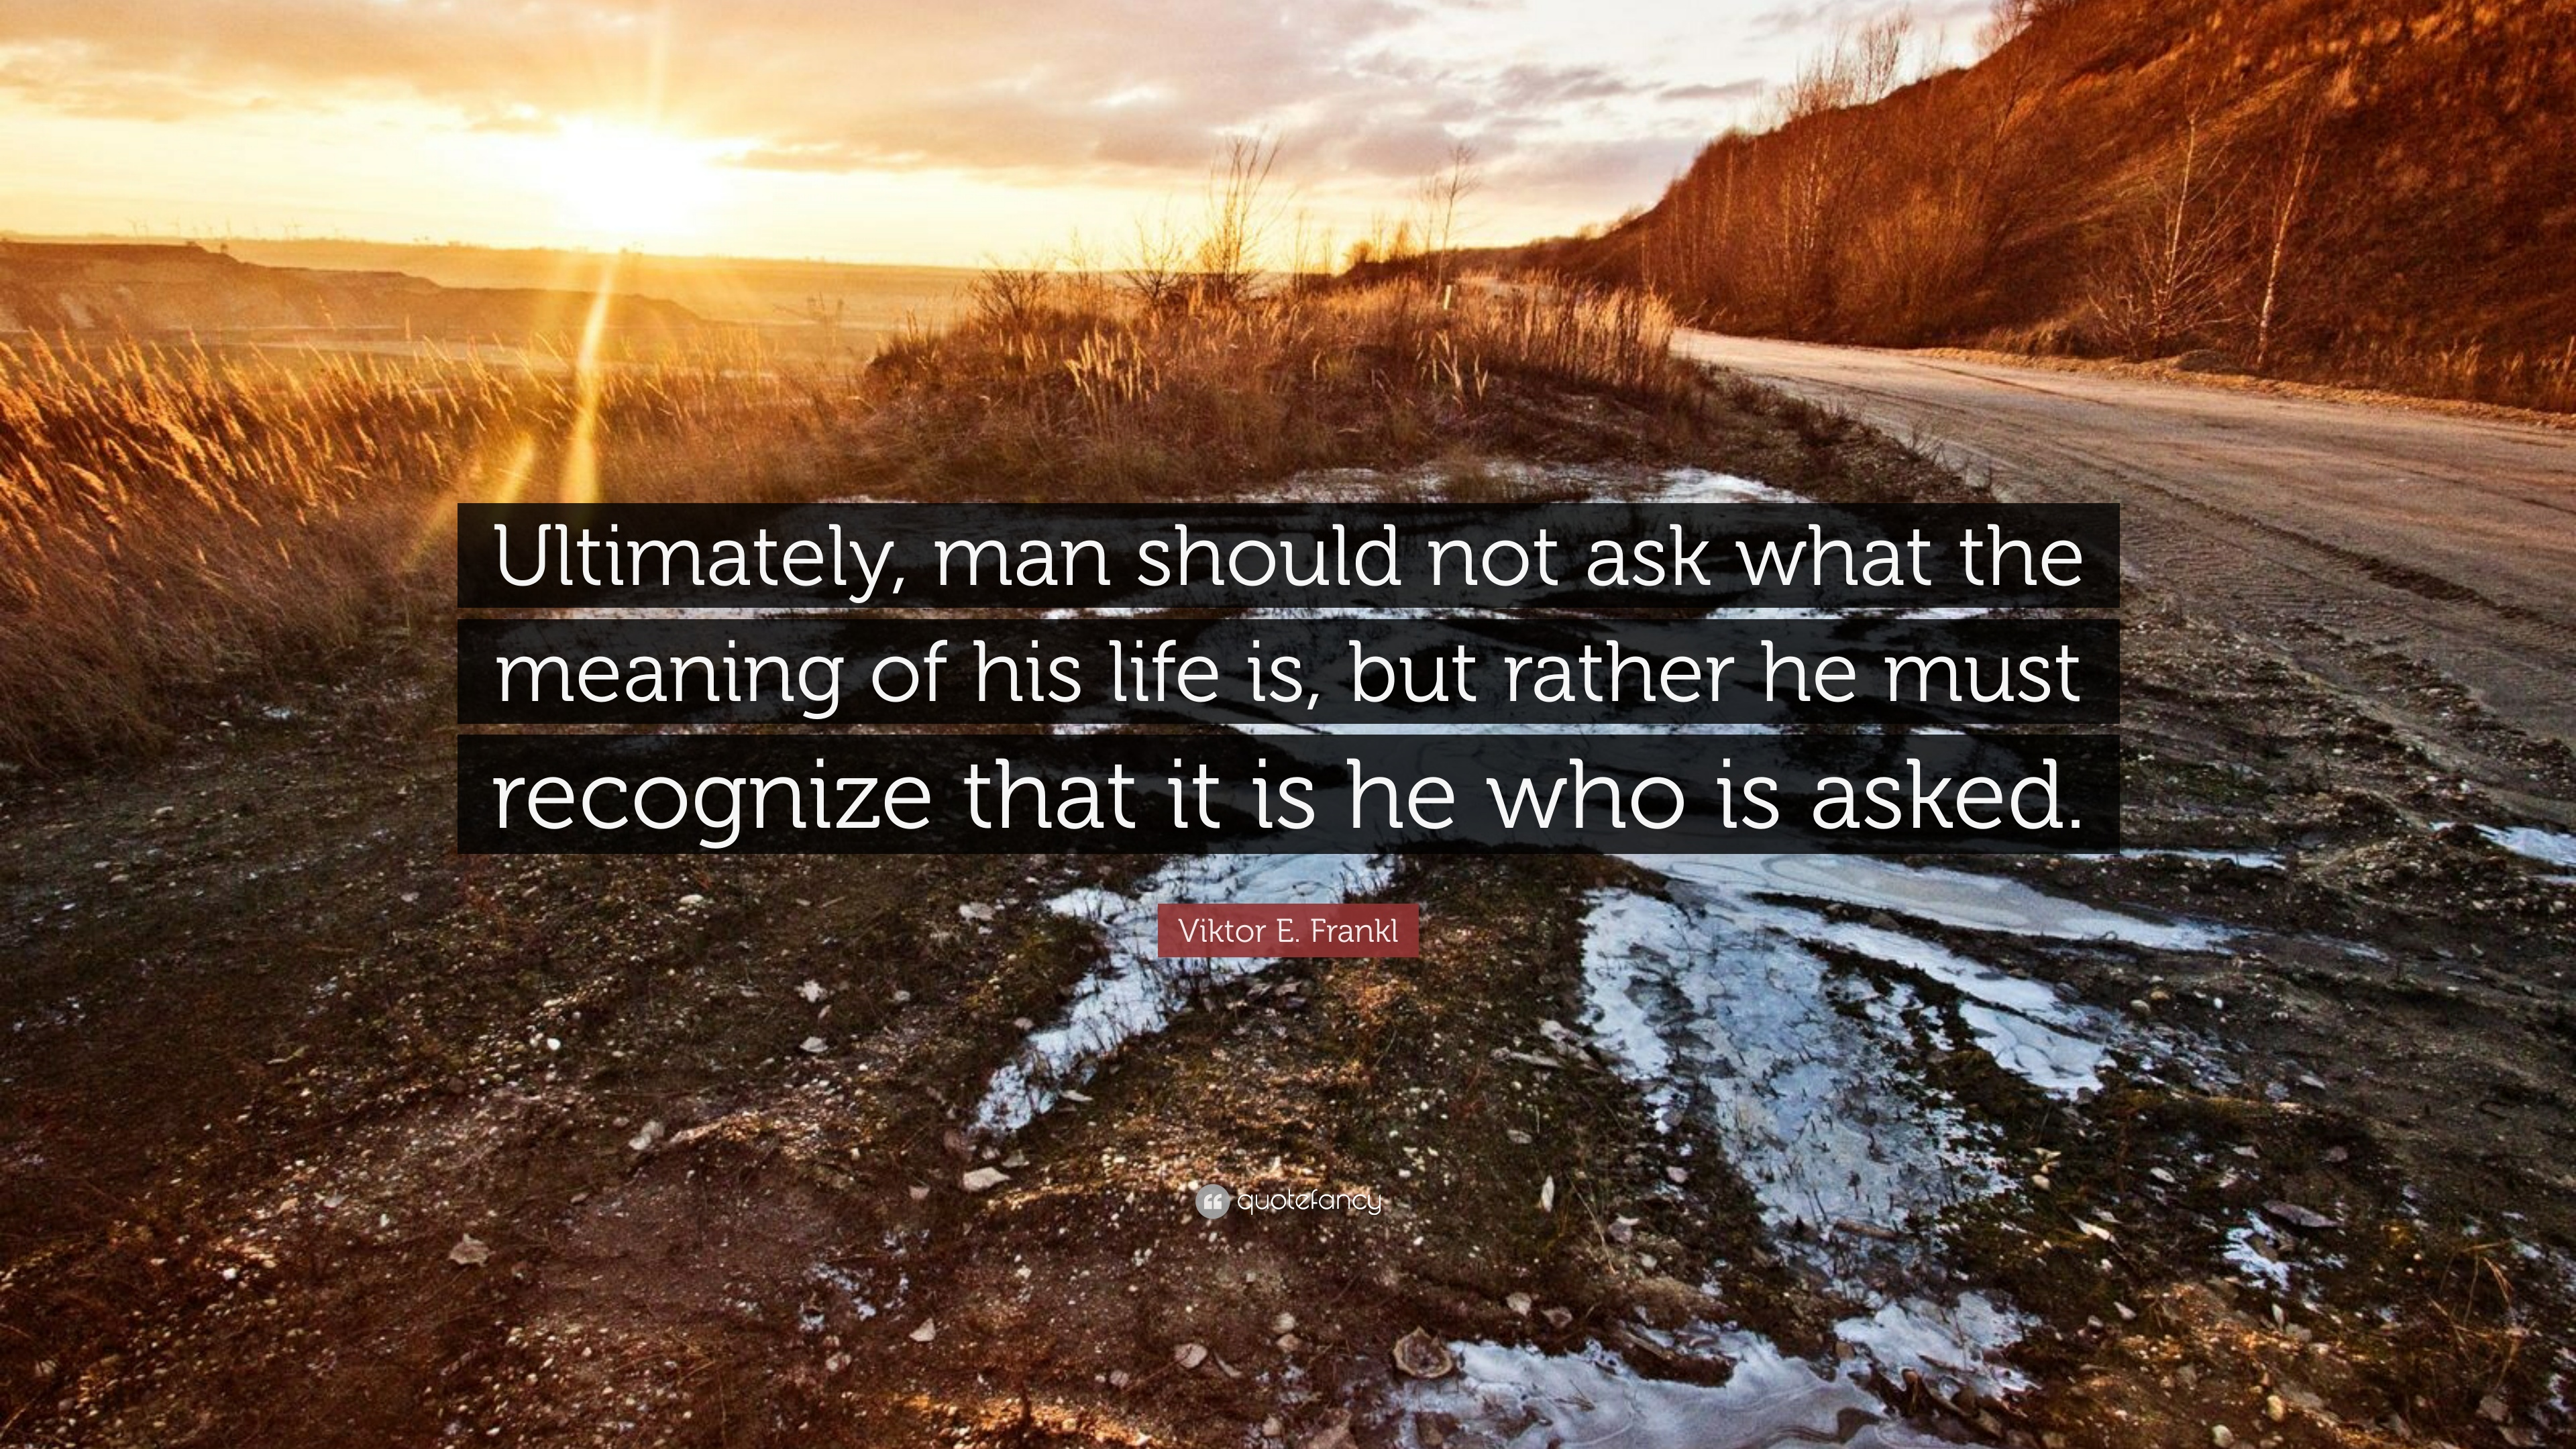 [Image]Man should not ask what the meaning of his life is